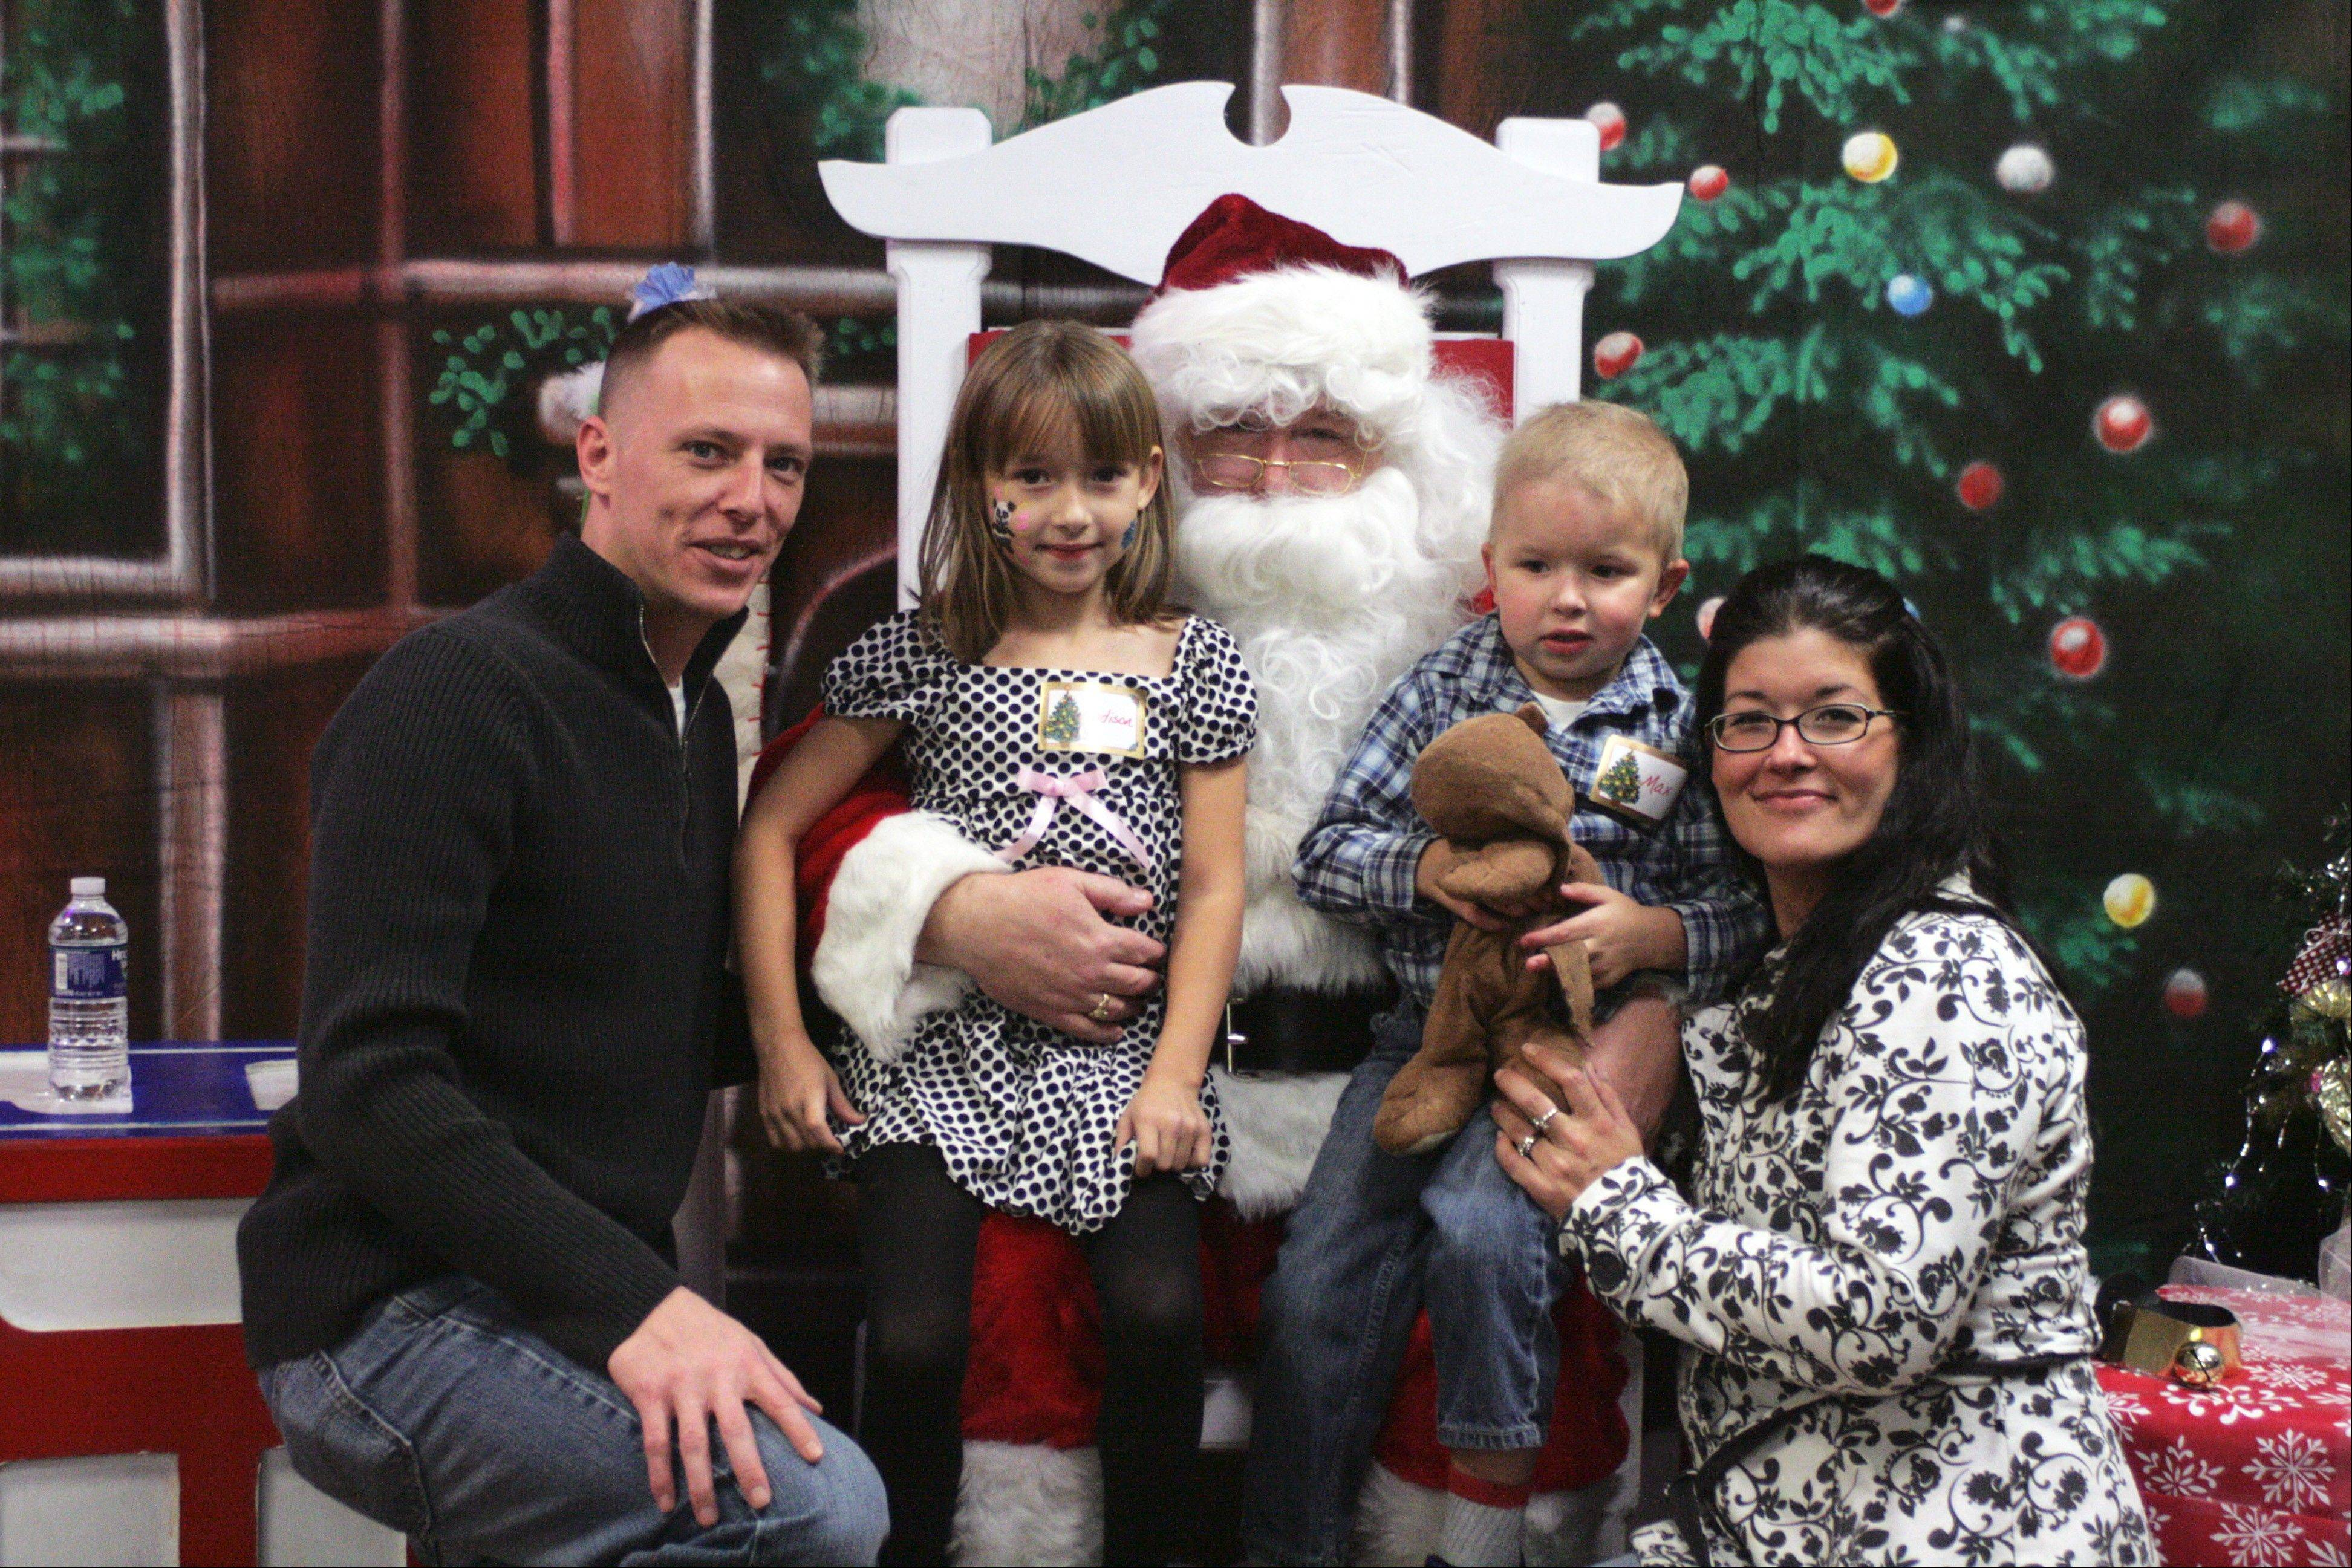 A local family poses for a picture with Santa during their child's stay at Cadence Health Central DuPage Hospital in Winfield.